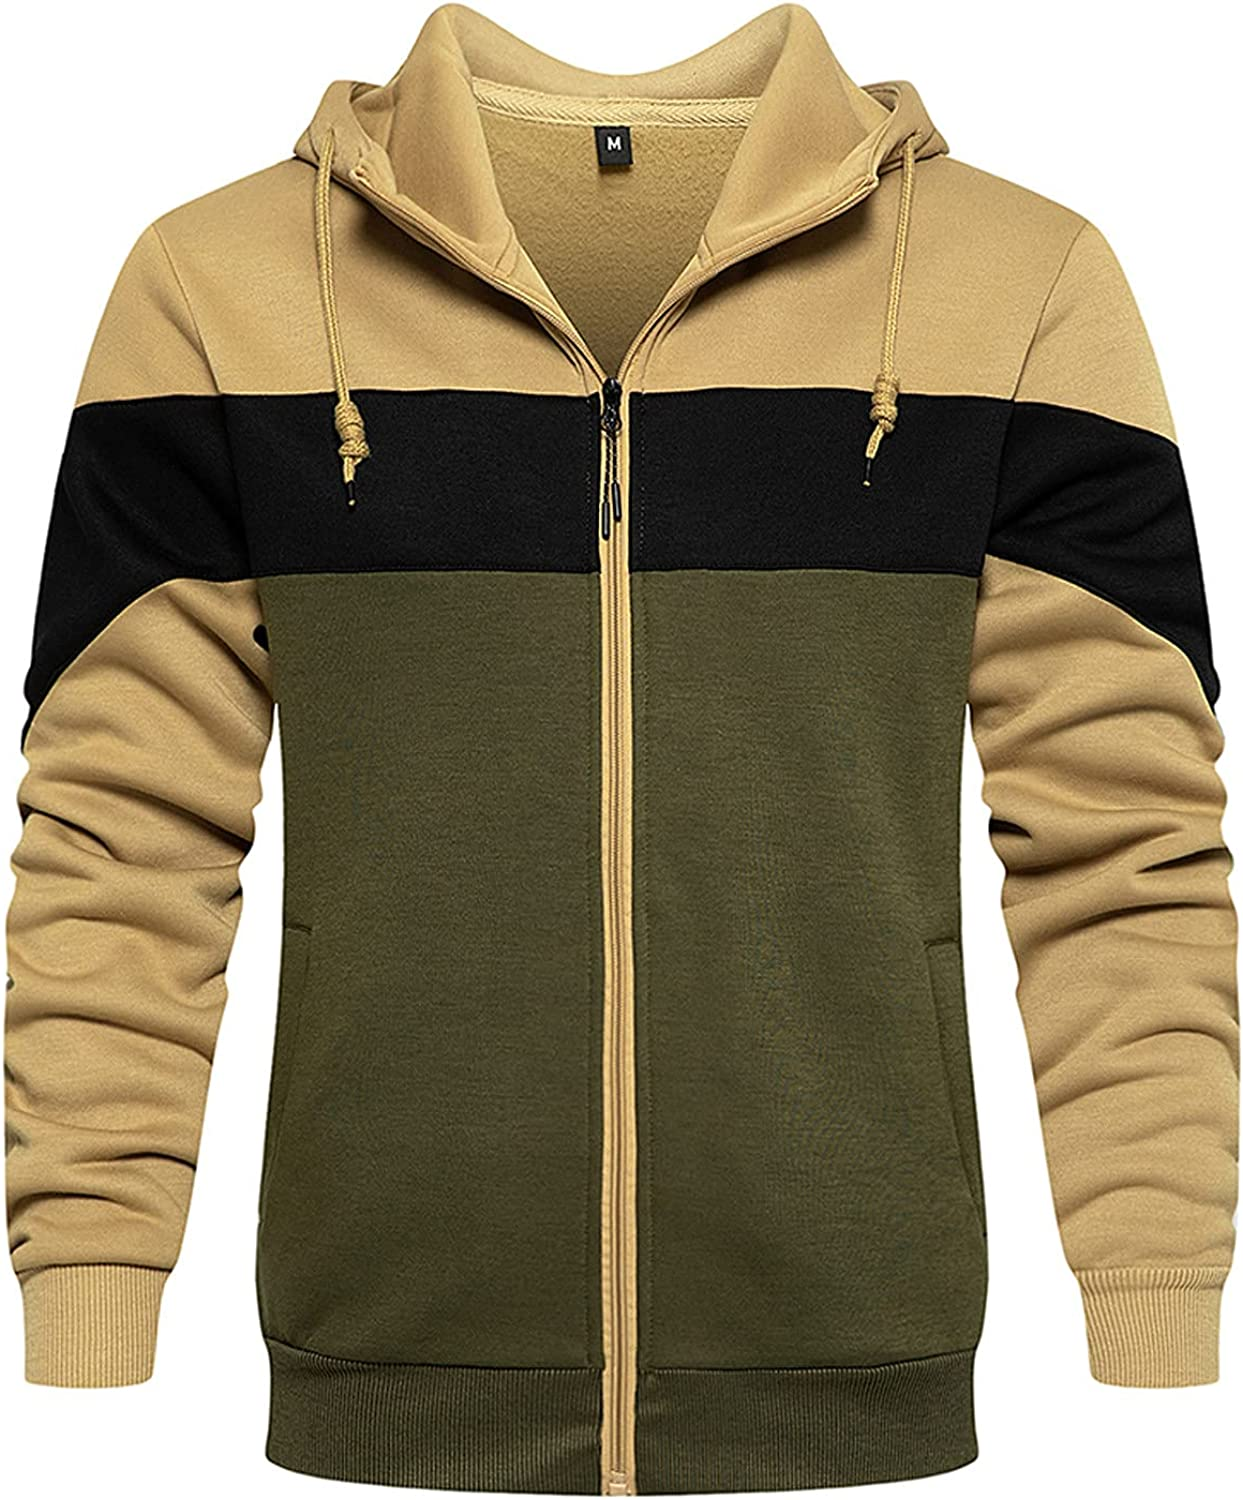 XXBR Patchwork Hoodies for Mens, Fall Zipper Drawstring Hooded Sweatshirts Slim Fit Athletic Sports Casual Pullover